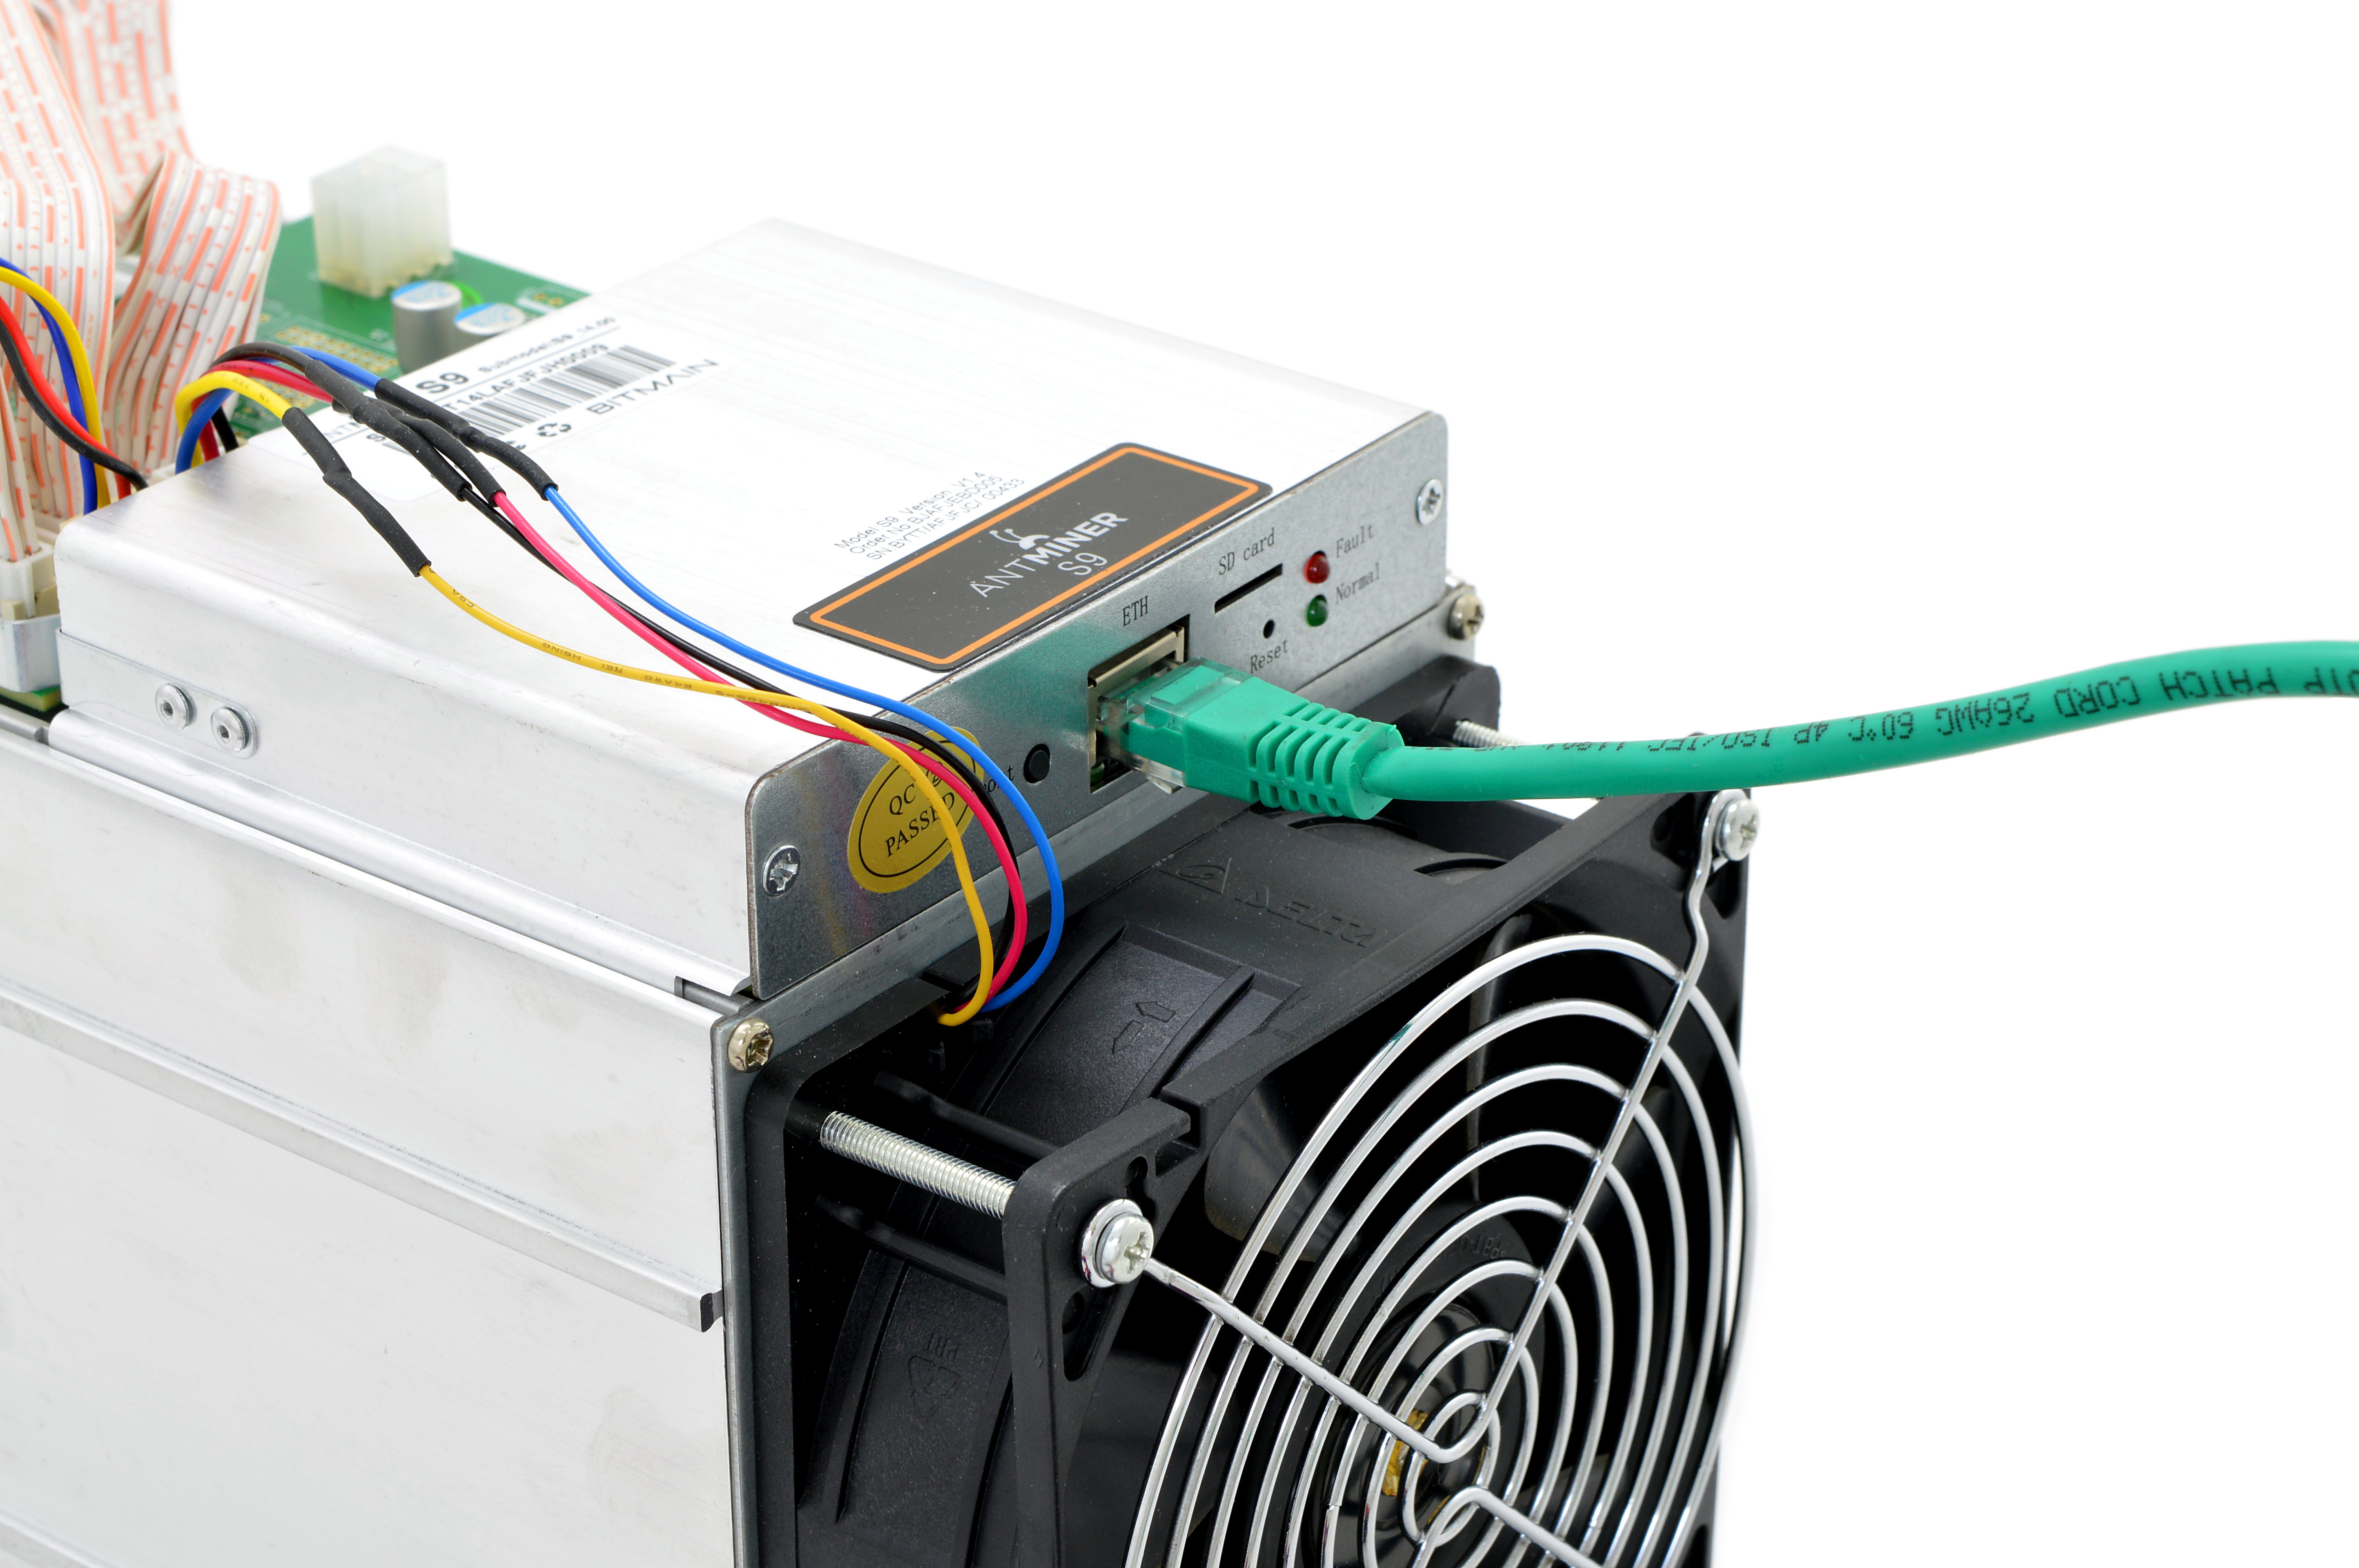 Guide Dogies Comprehensive Bitmain Antminer S9 Setup Hd Want To Control The Blower You Just Need Connect Org Blk Wire